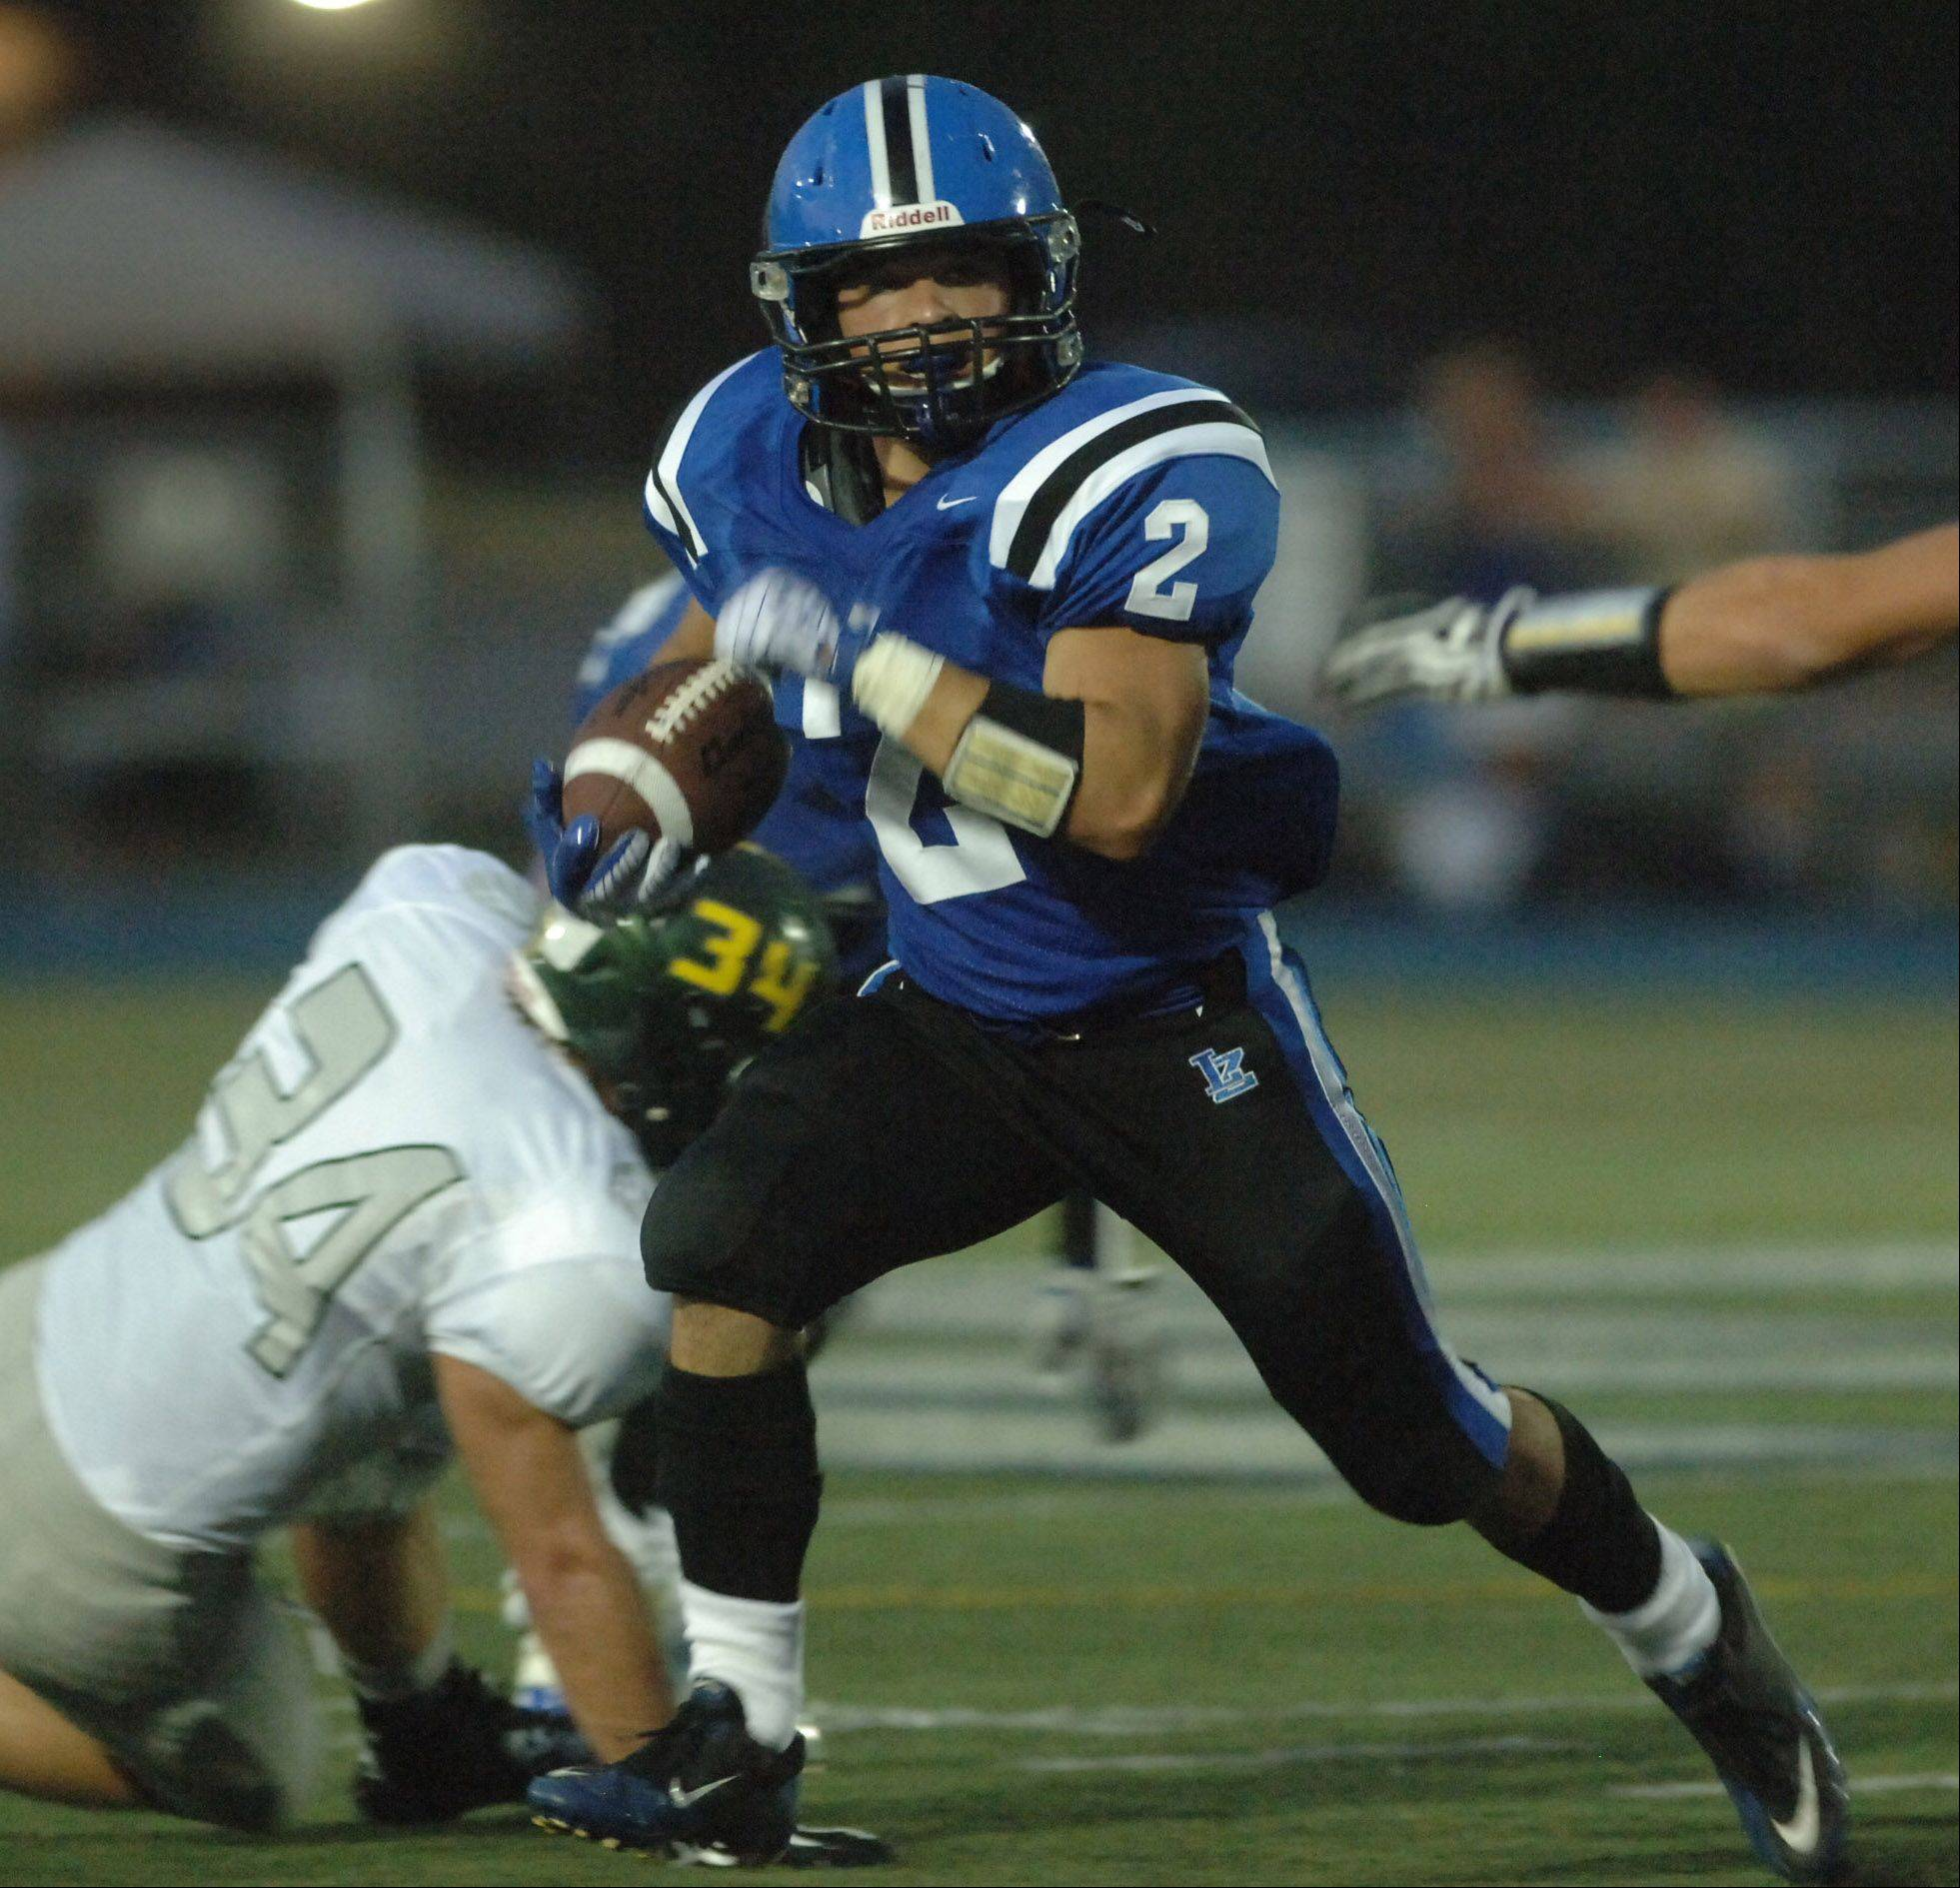 Lake Zurich's Kody Schaar looks for a hole during Friday night's home game against Fremd.